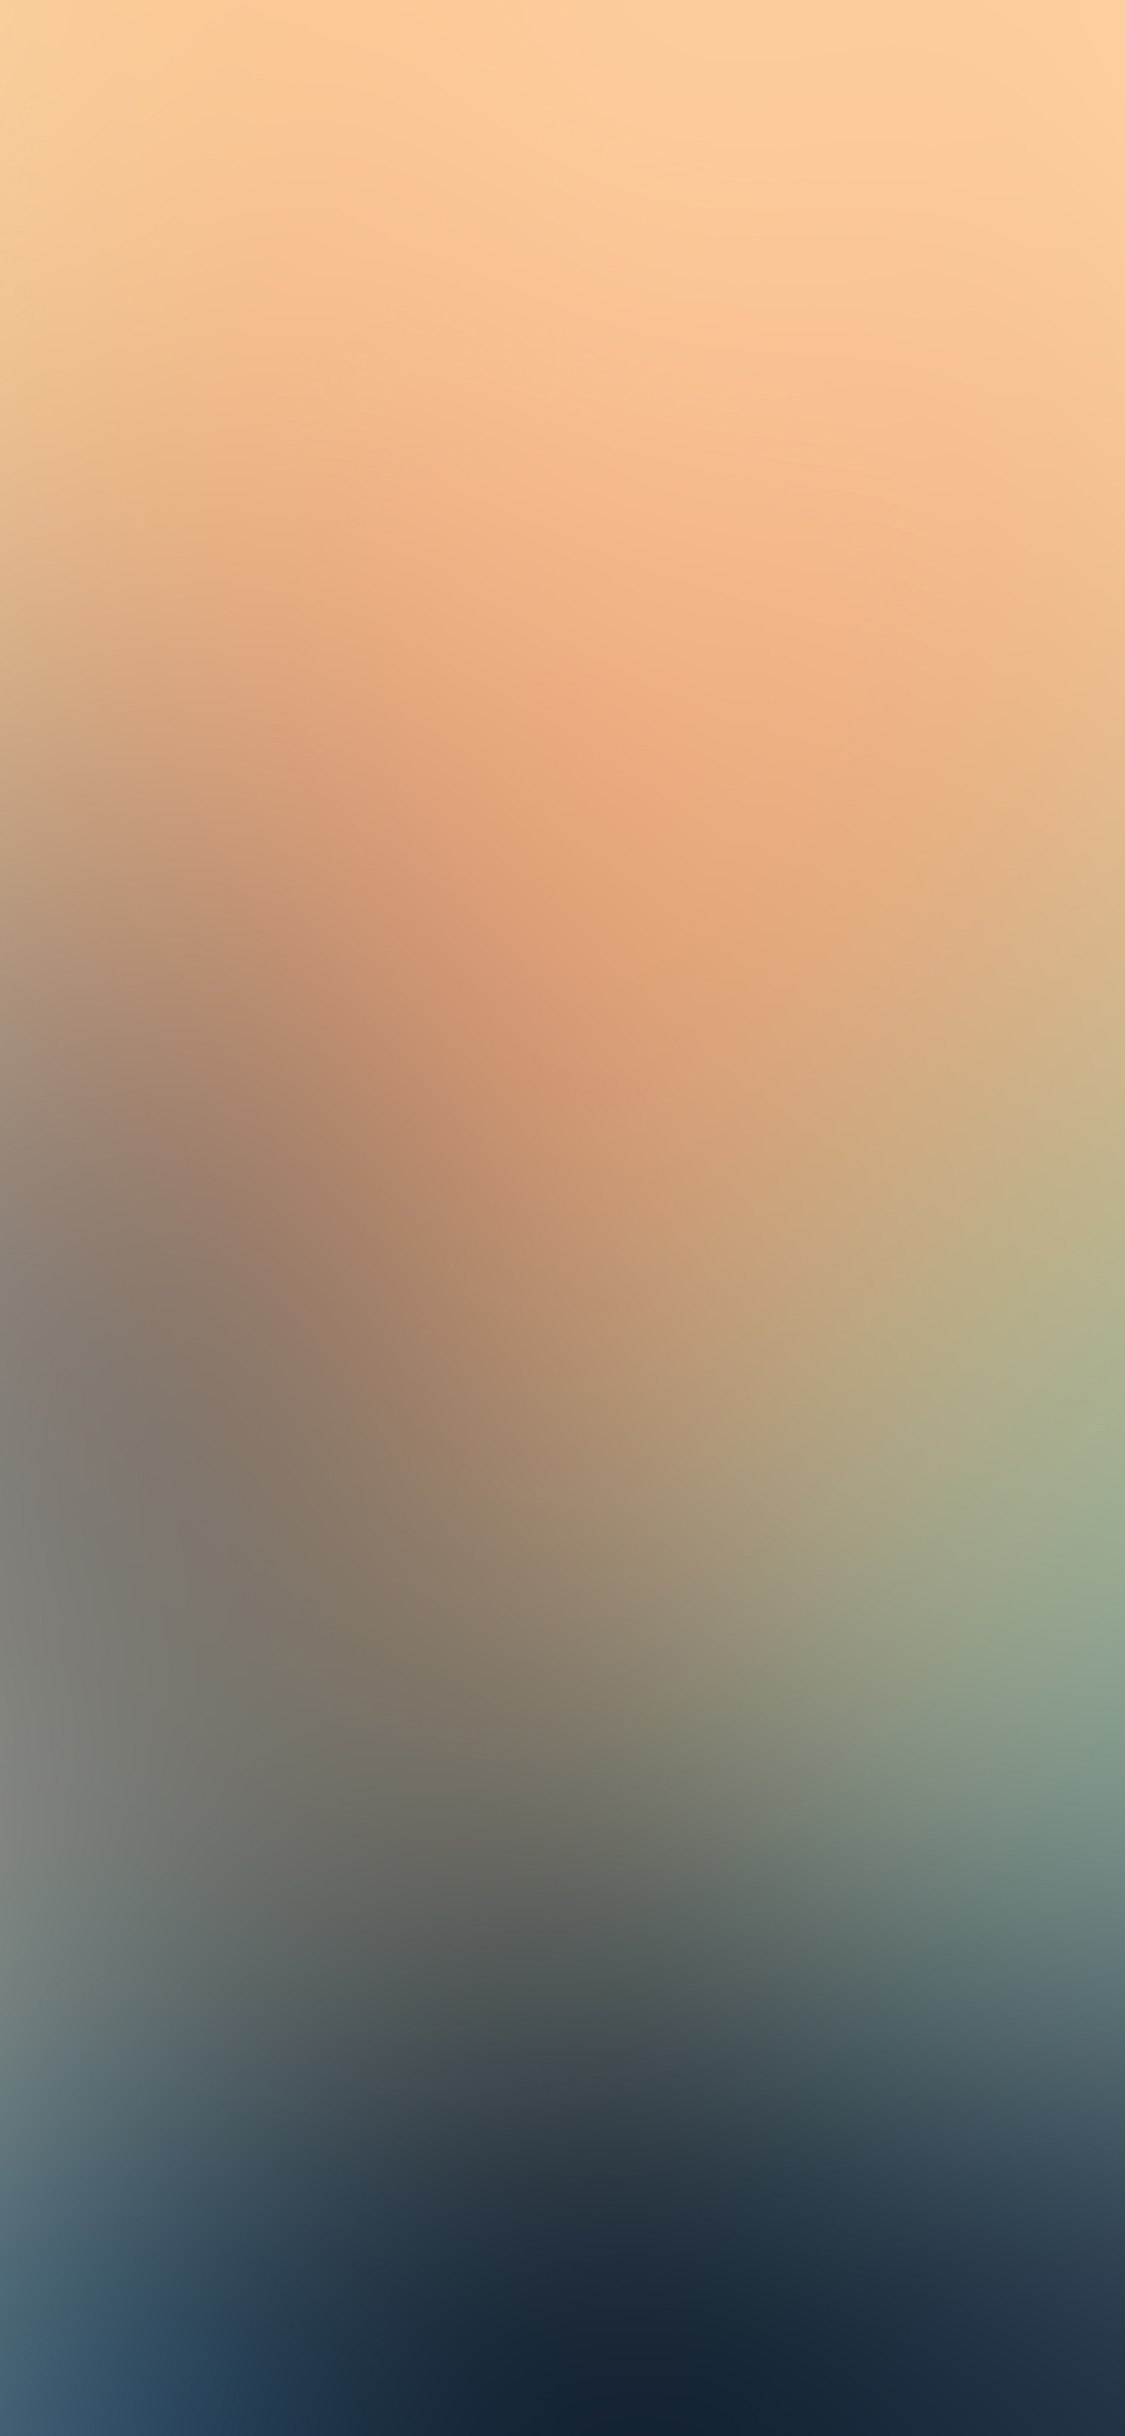 iPhoneXpapers.com-Apple-iPhone-wallpaper-sd51-joyful-life-gradation-blur